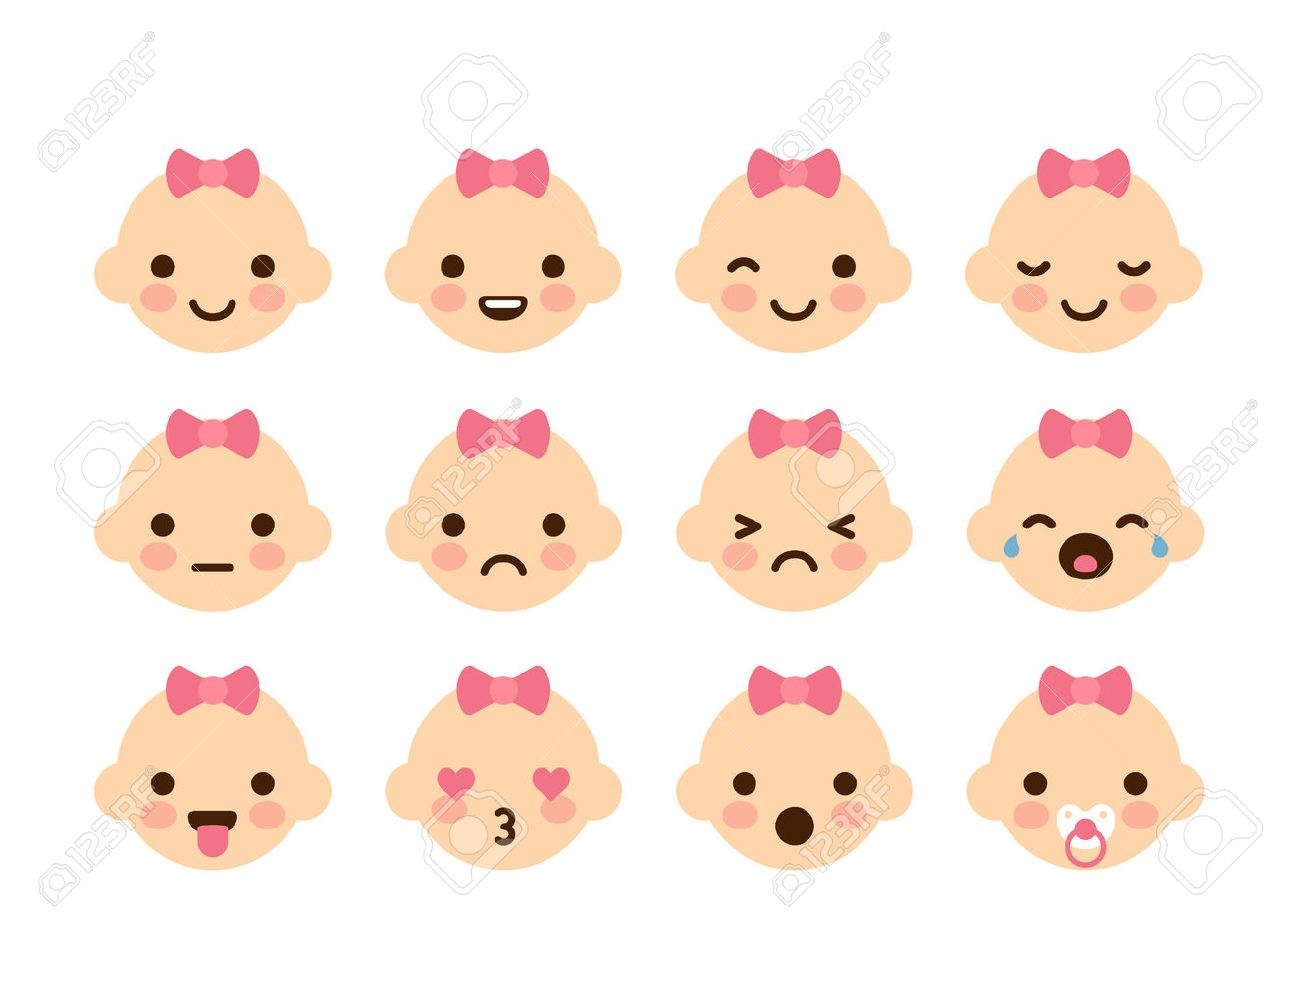 set of 12 cute baby emoticons very simple but expressive cartoon